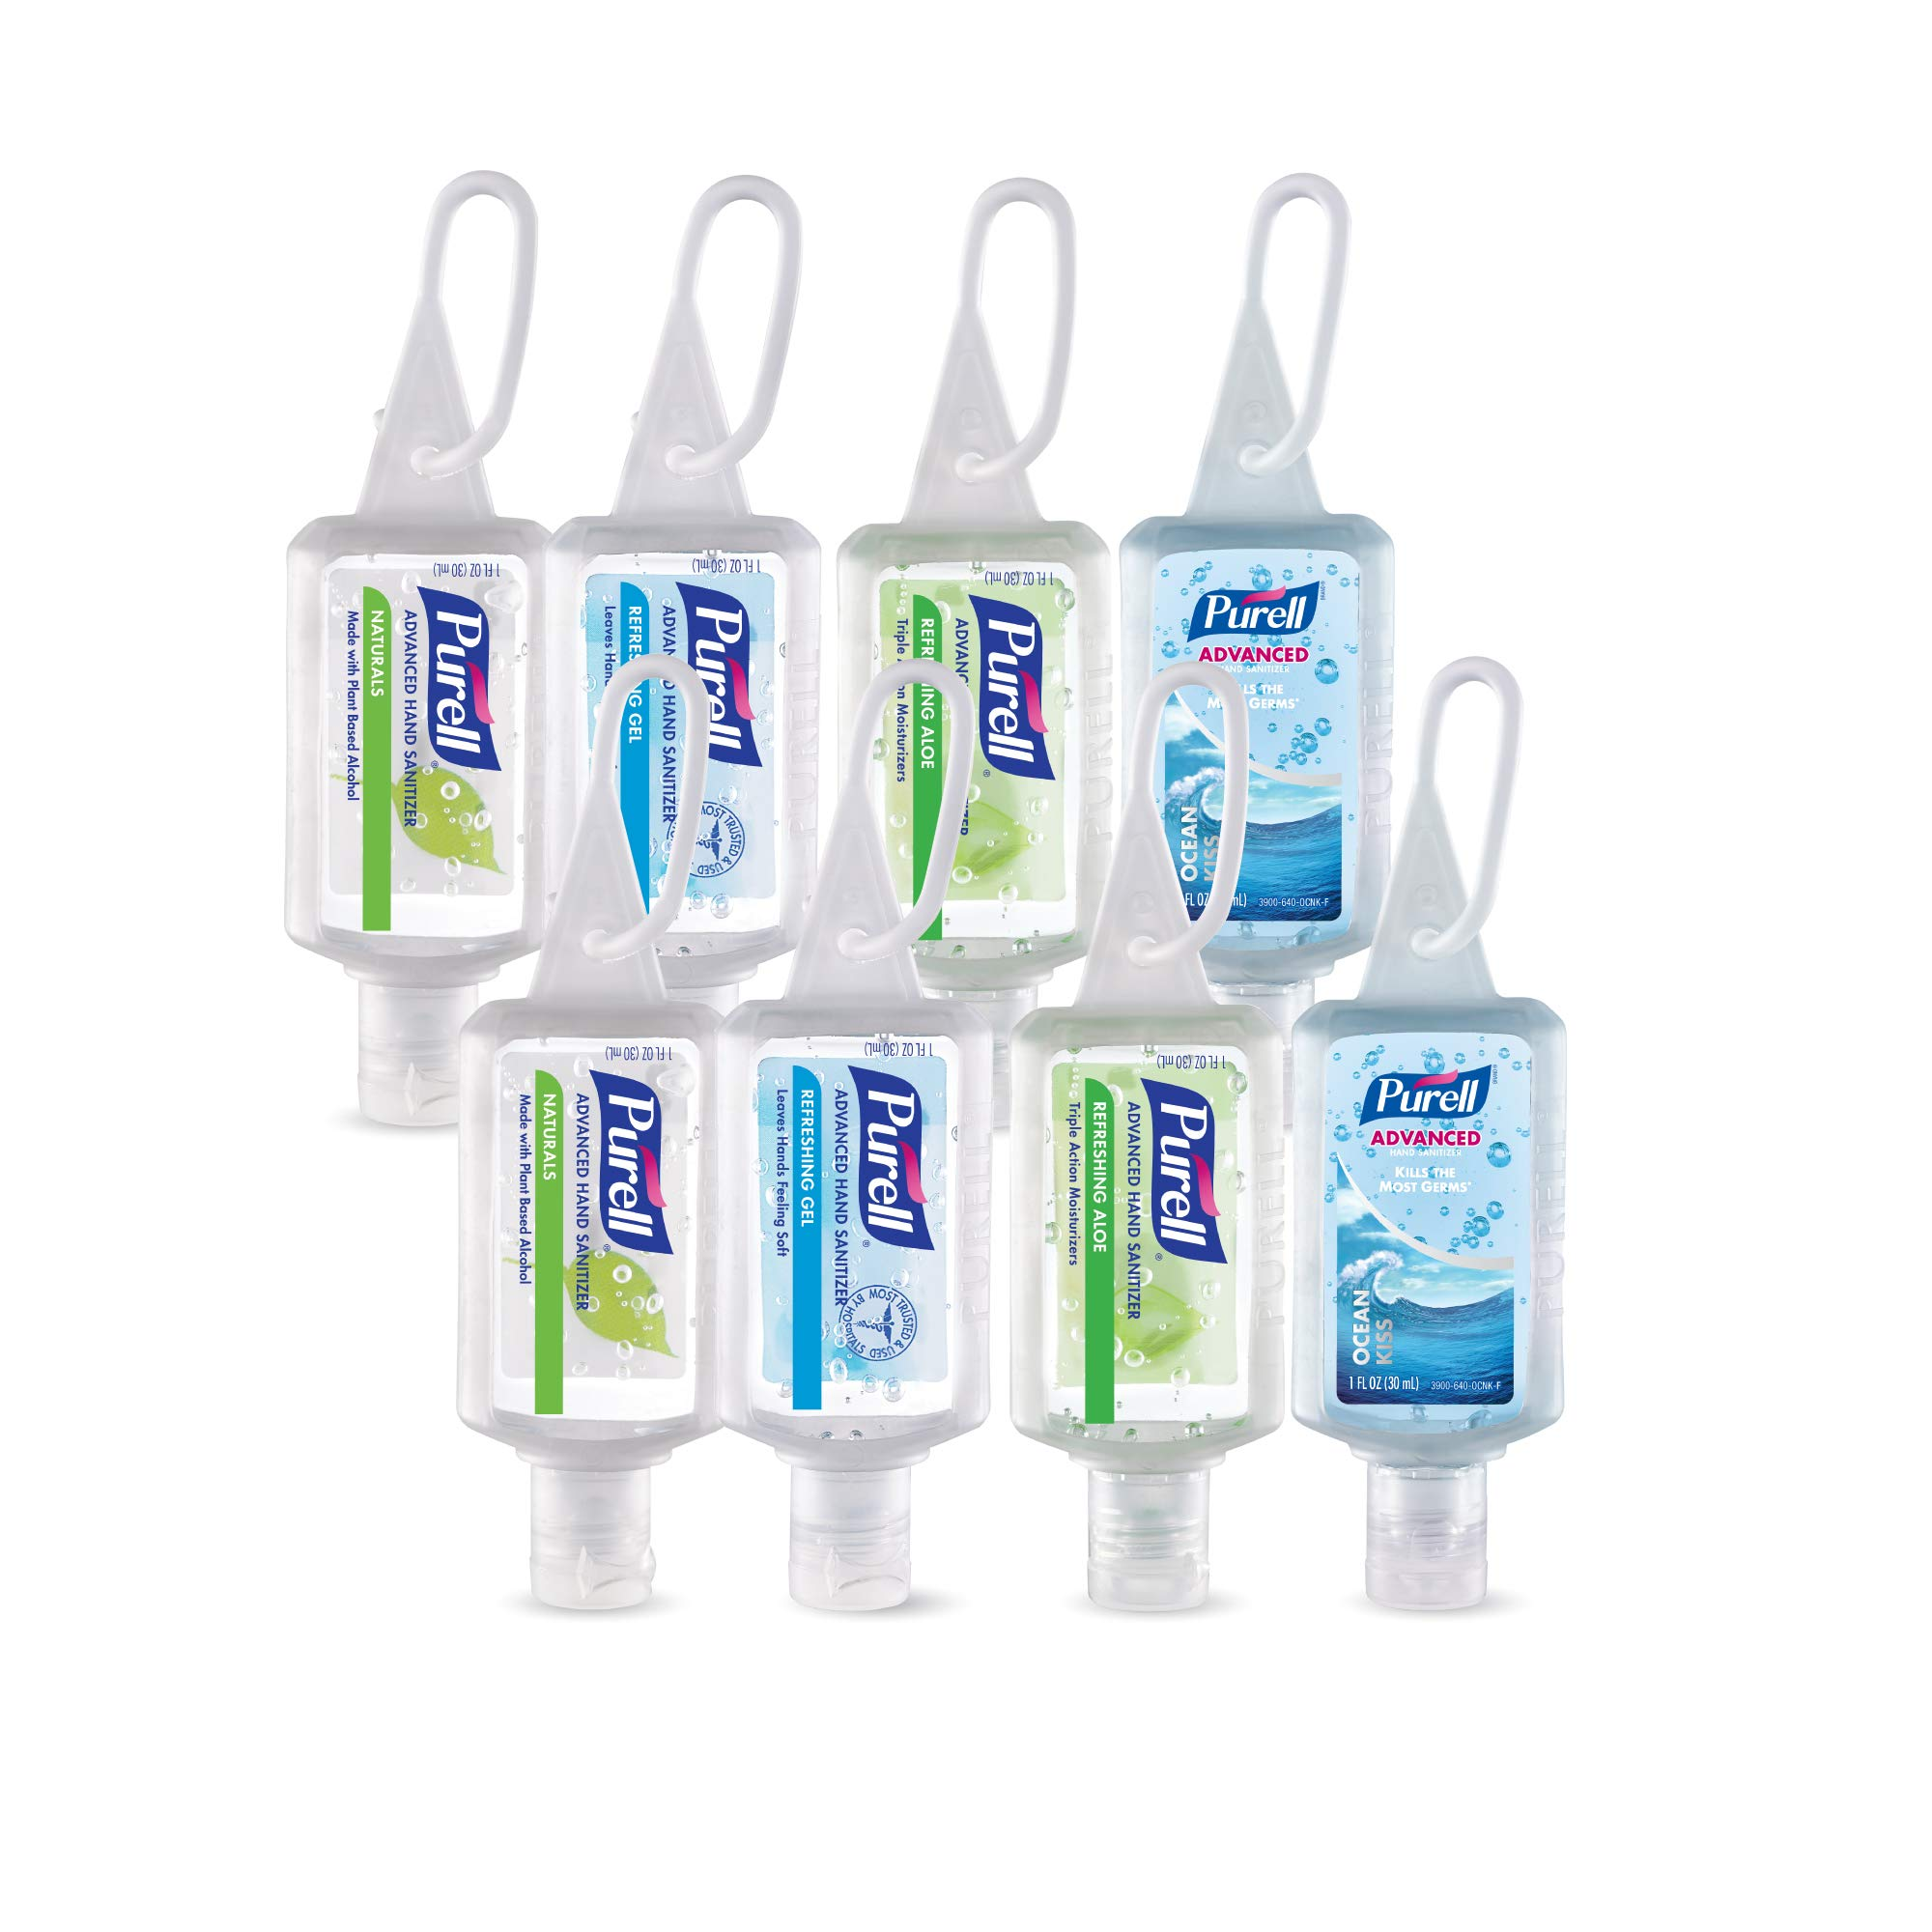 PURELL Advanced Hand Sanitizer Gel, Variety Pack, 8 -1 fl oz Portable, Travel Sized Flip Cap Bottles with included JELLY WRAP Carriers (Case of 8) - 3900-09-ECSC by Purell